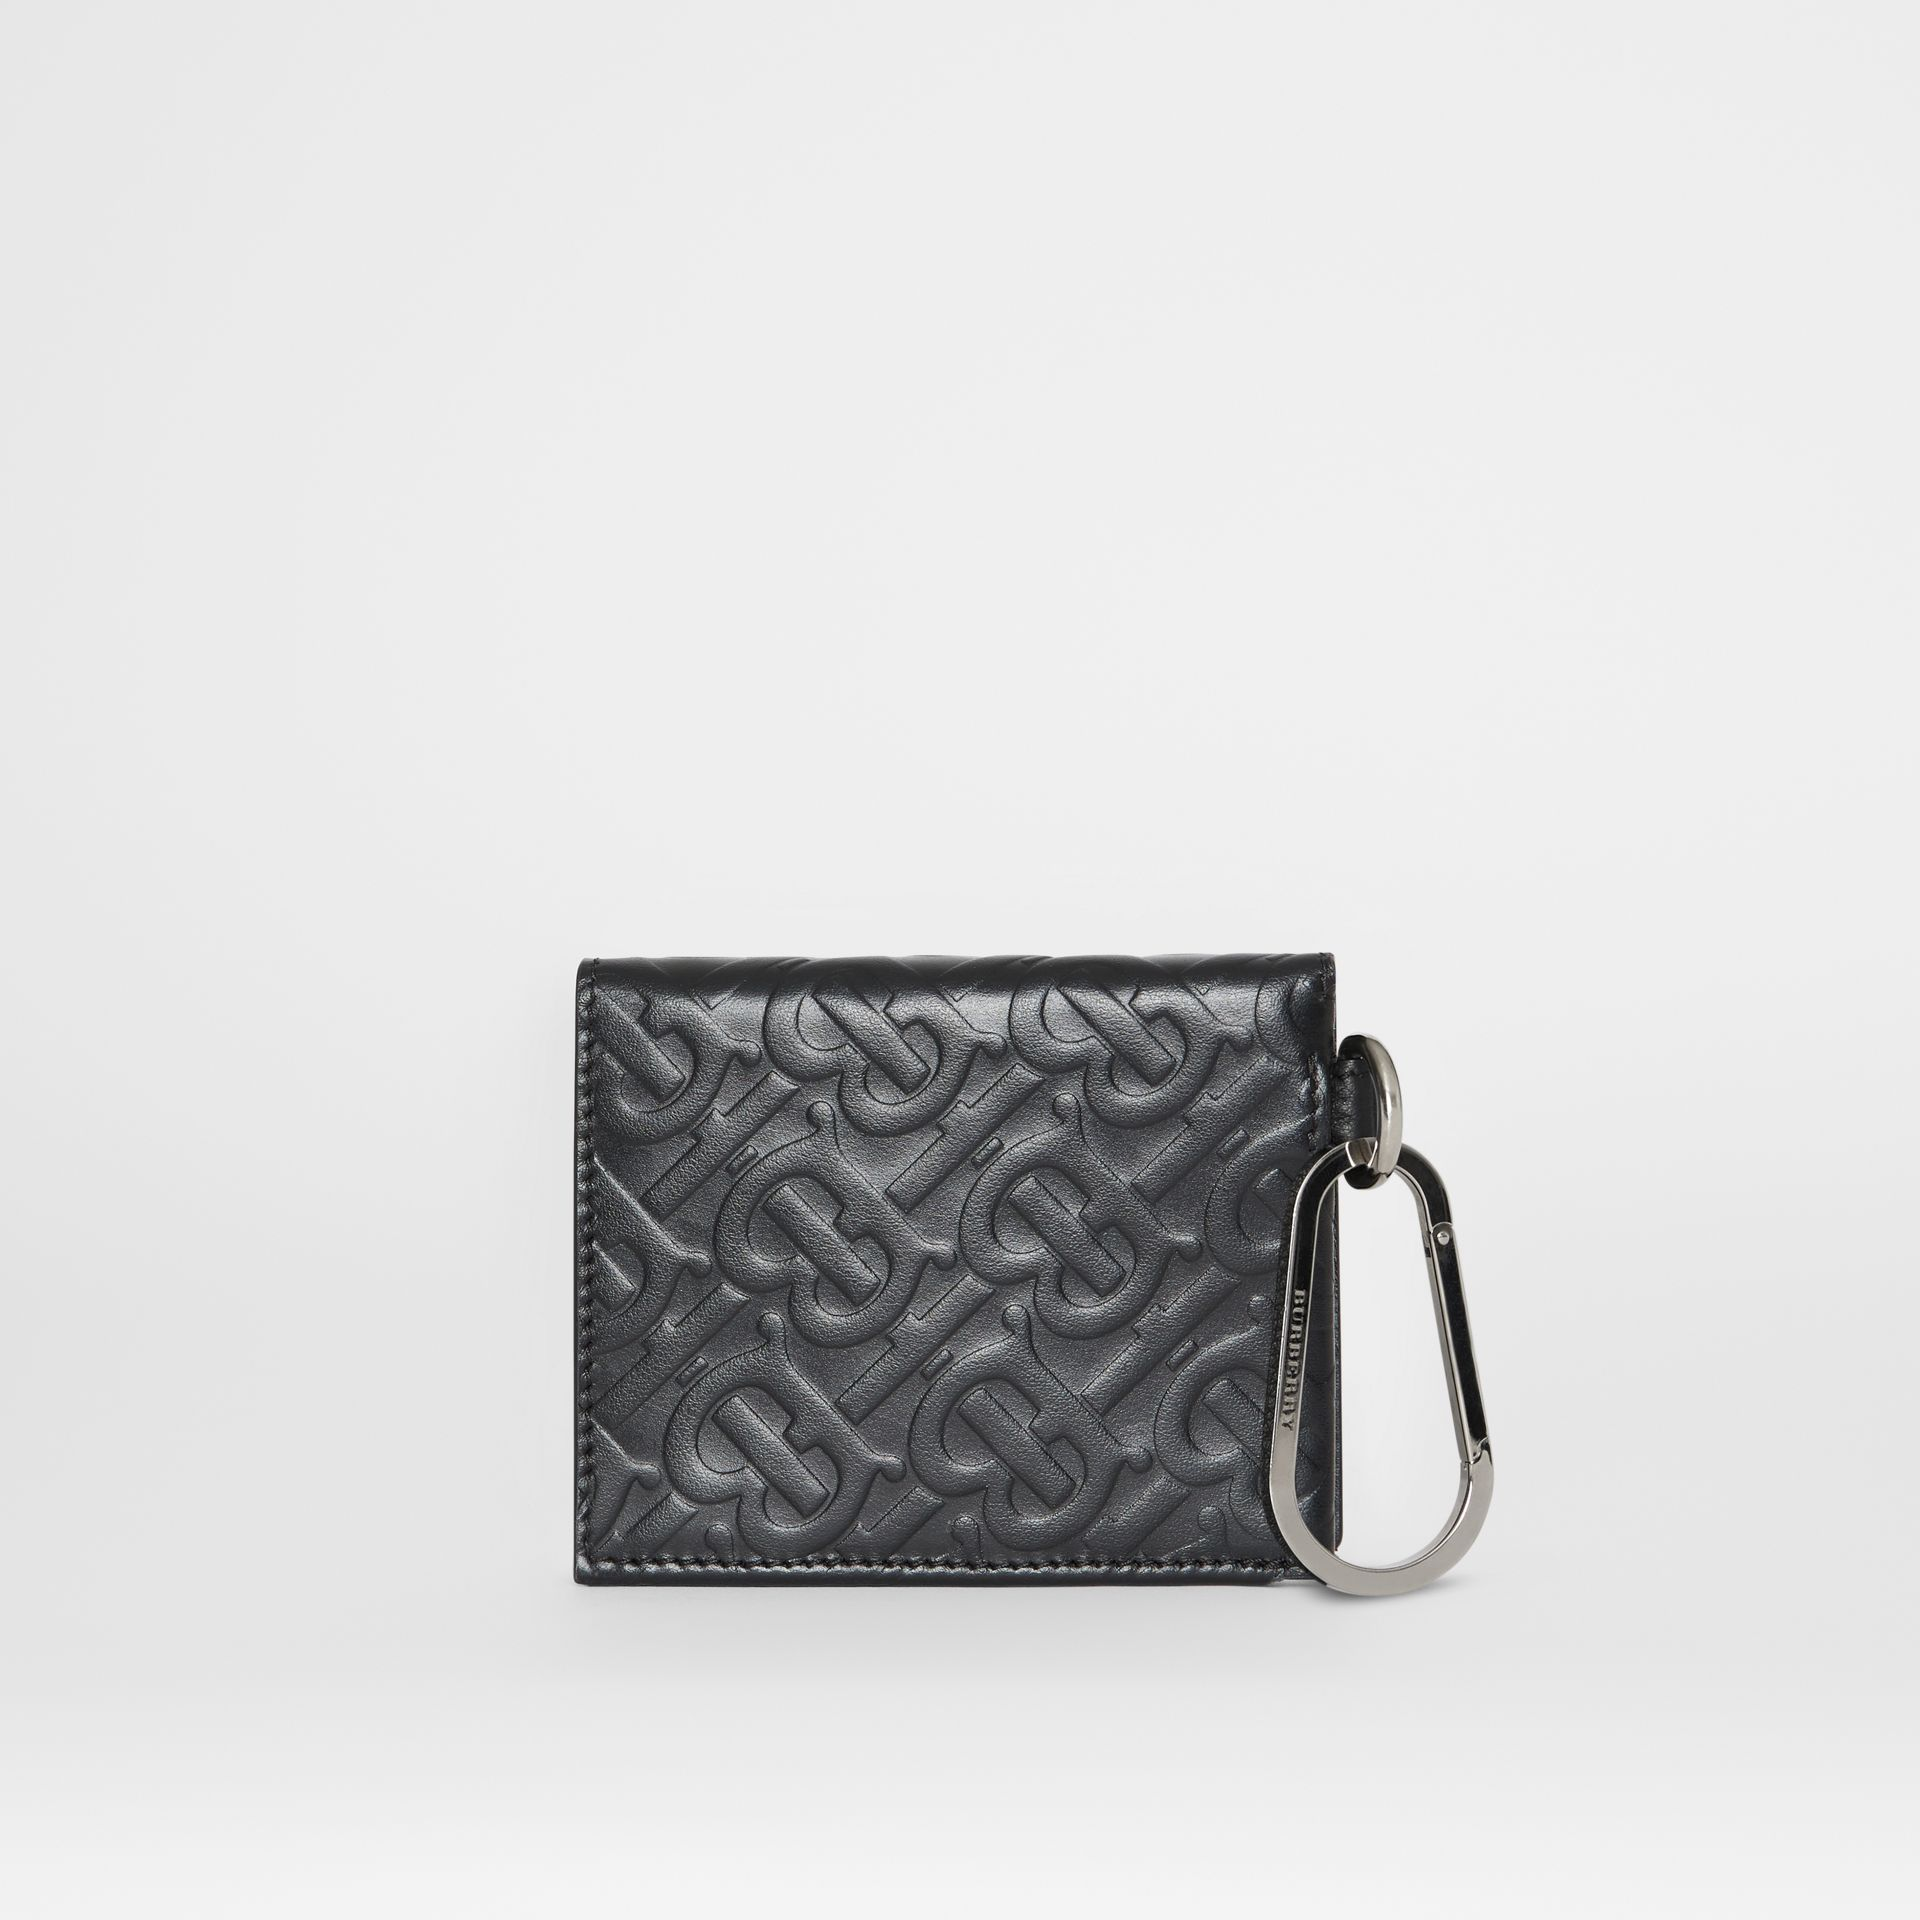 Monogram Embossed Leather Trifold Wallet in Black | Burberry United States - gallery image 4